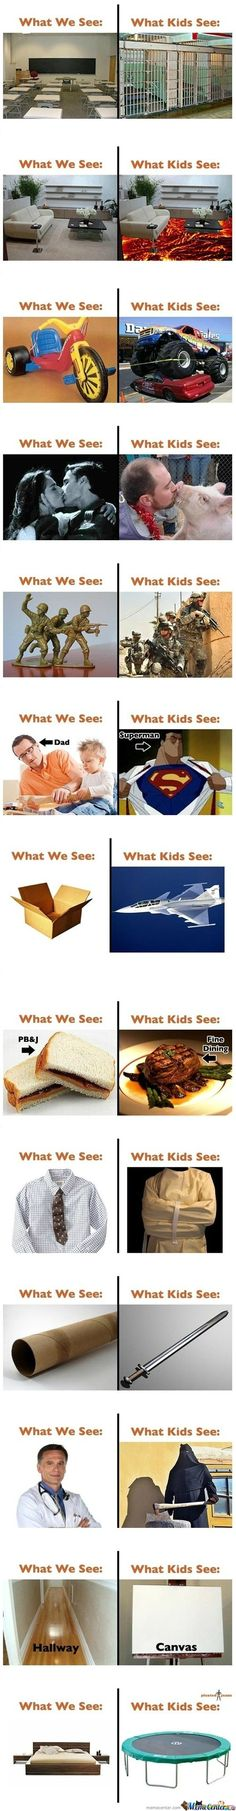 Kids View on the World